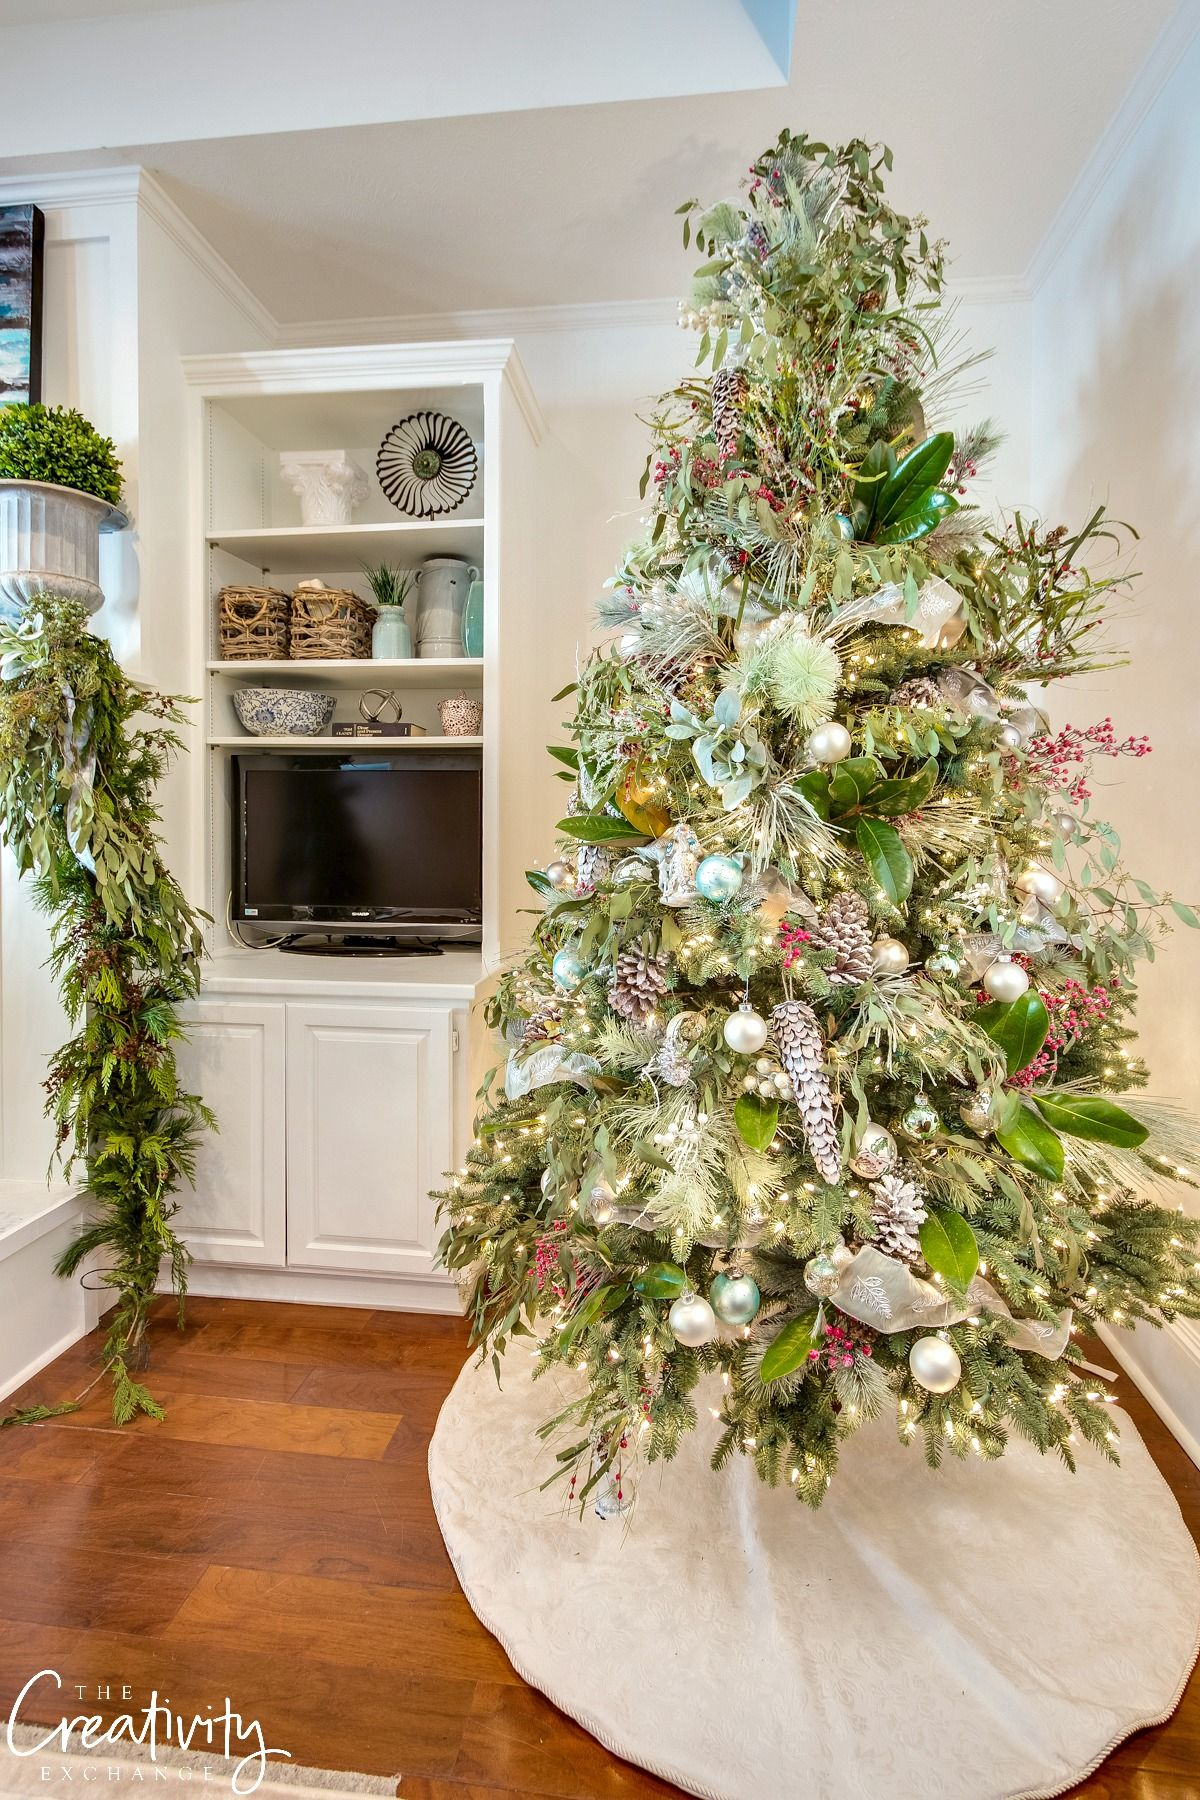 Winter Wonderland Christmas Tree Mixed With Magnolia Leaves And Eucalyptus Christmas Home Christmas Decor Inspiration Country Christmas Decorations